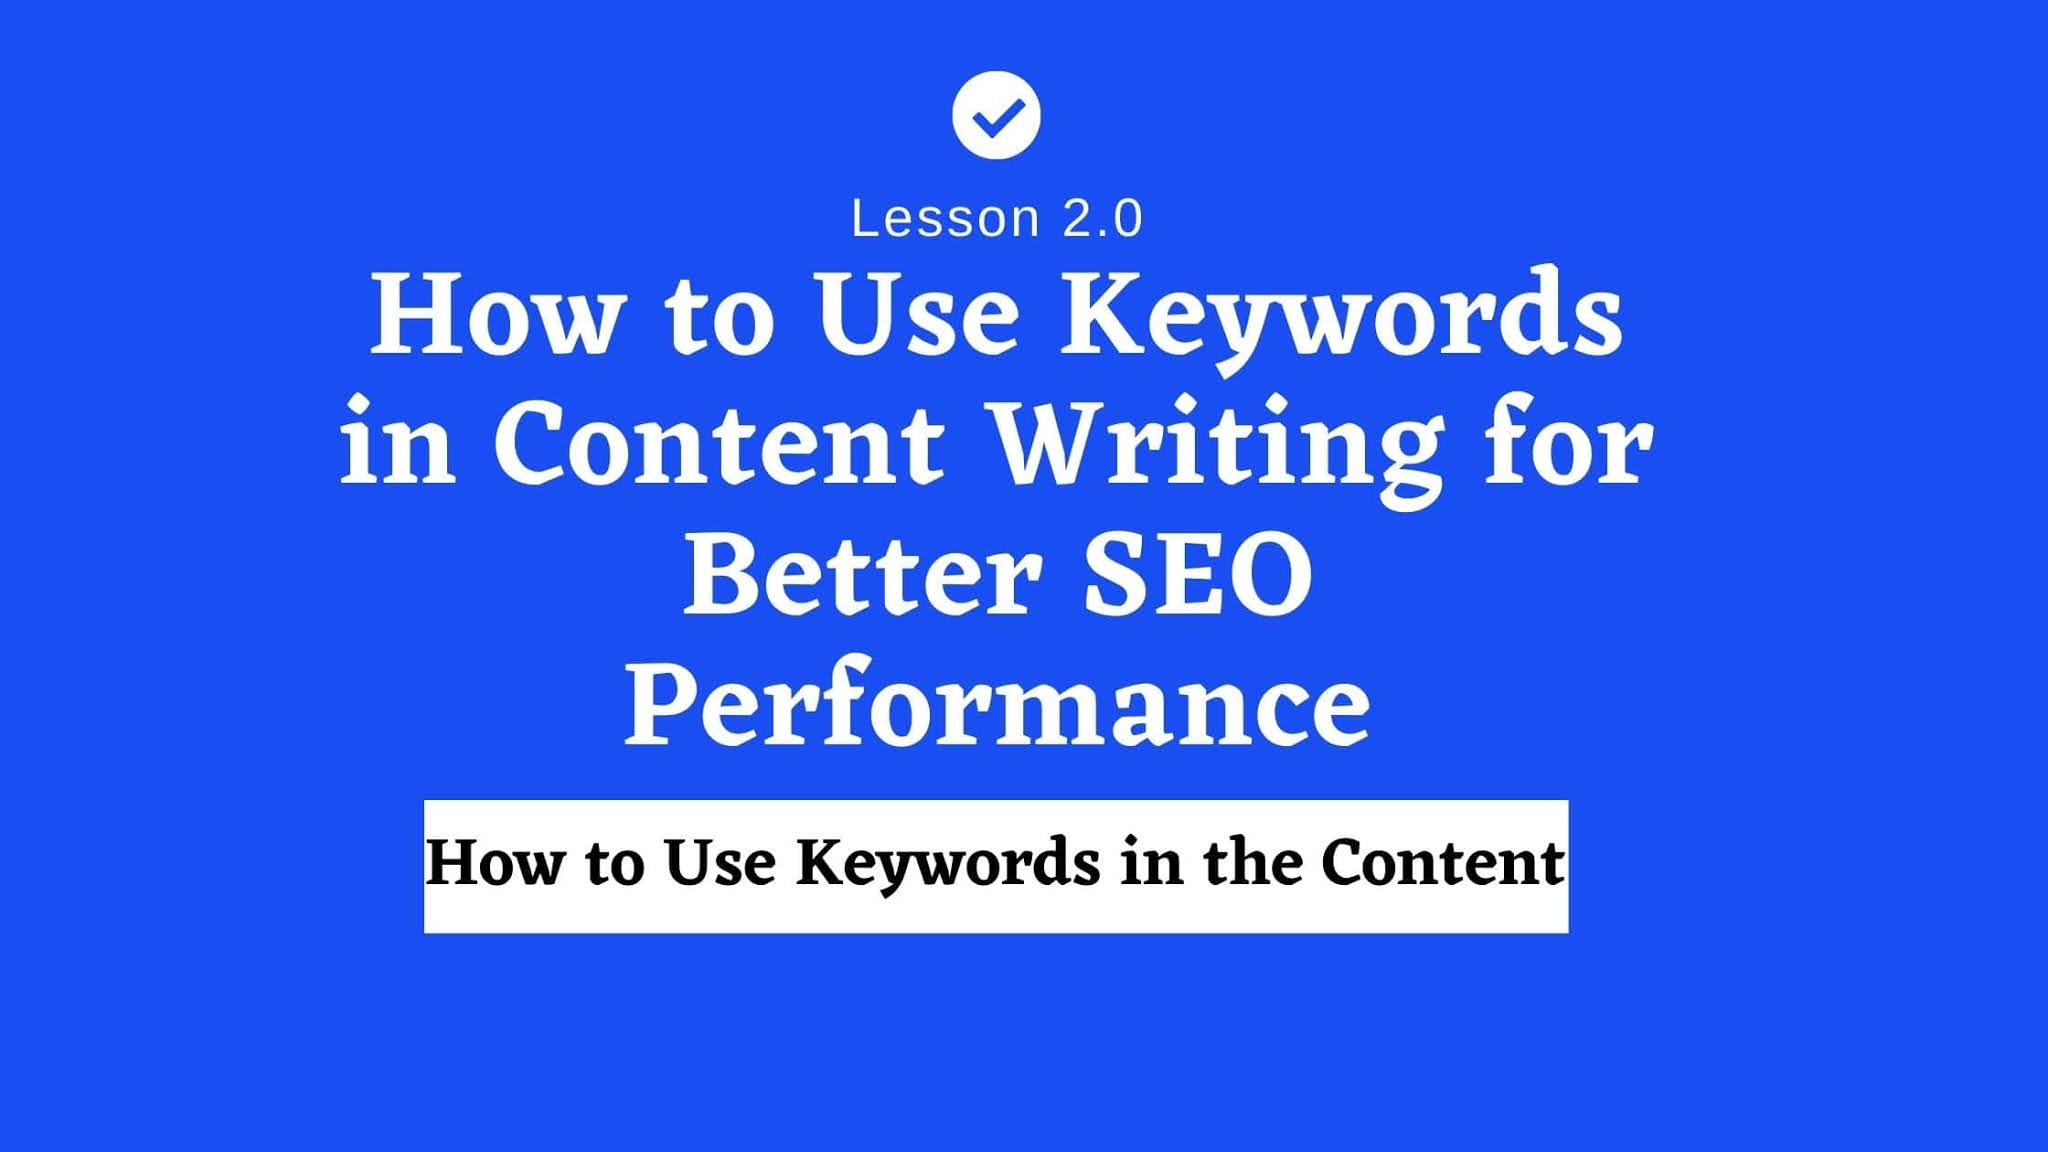 How to Use Keywords in Content Writing for Better SEO